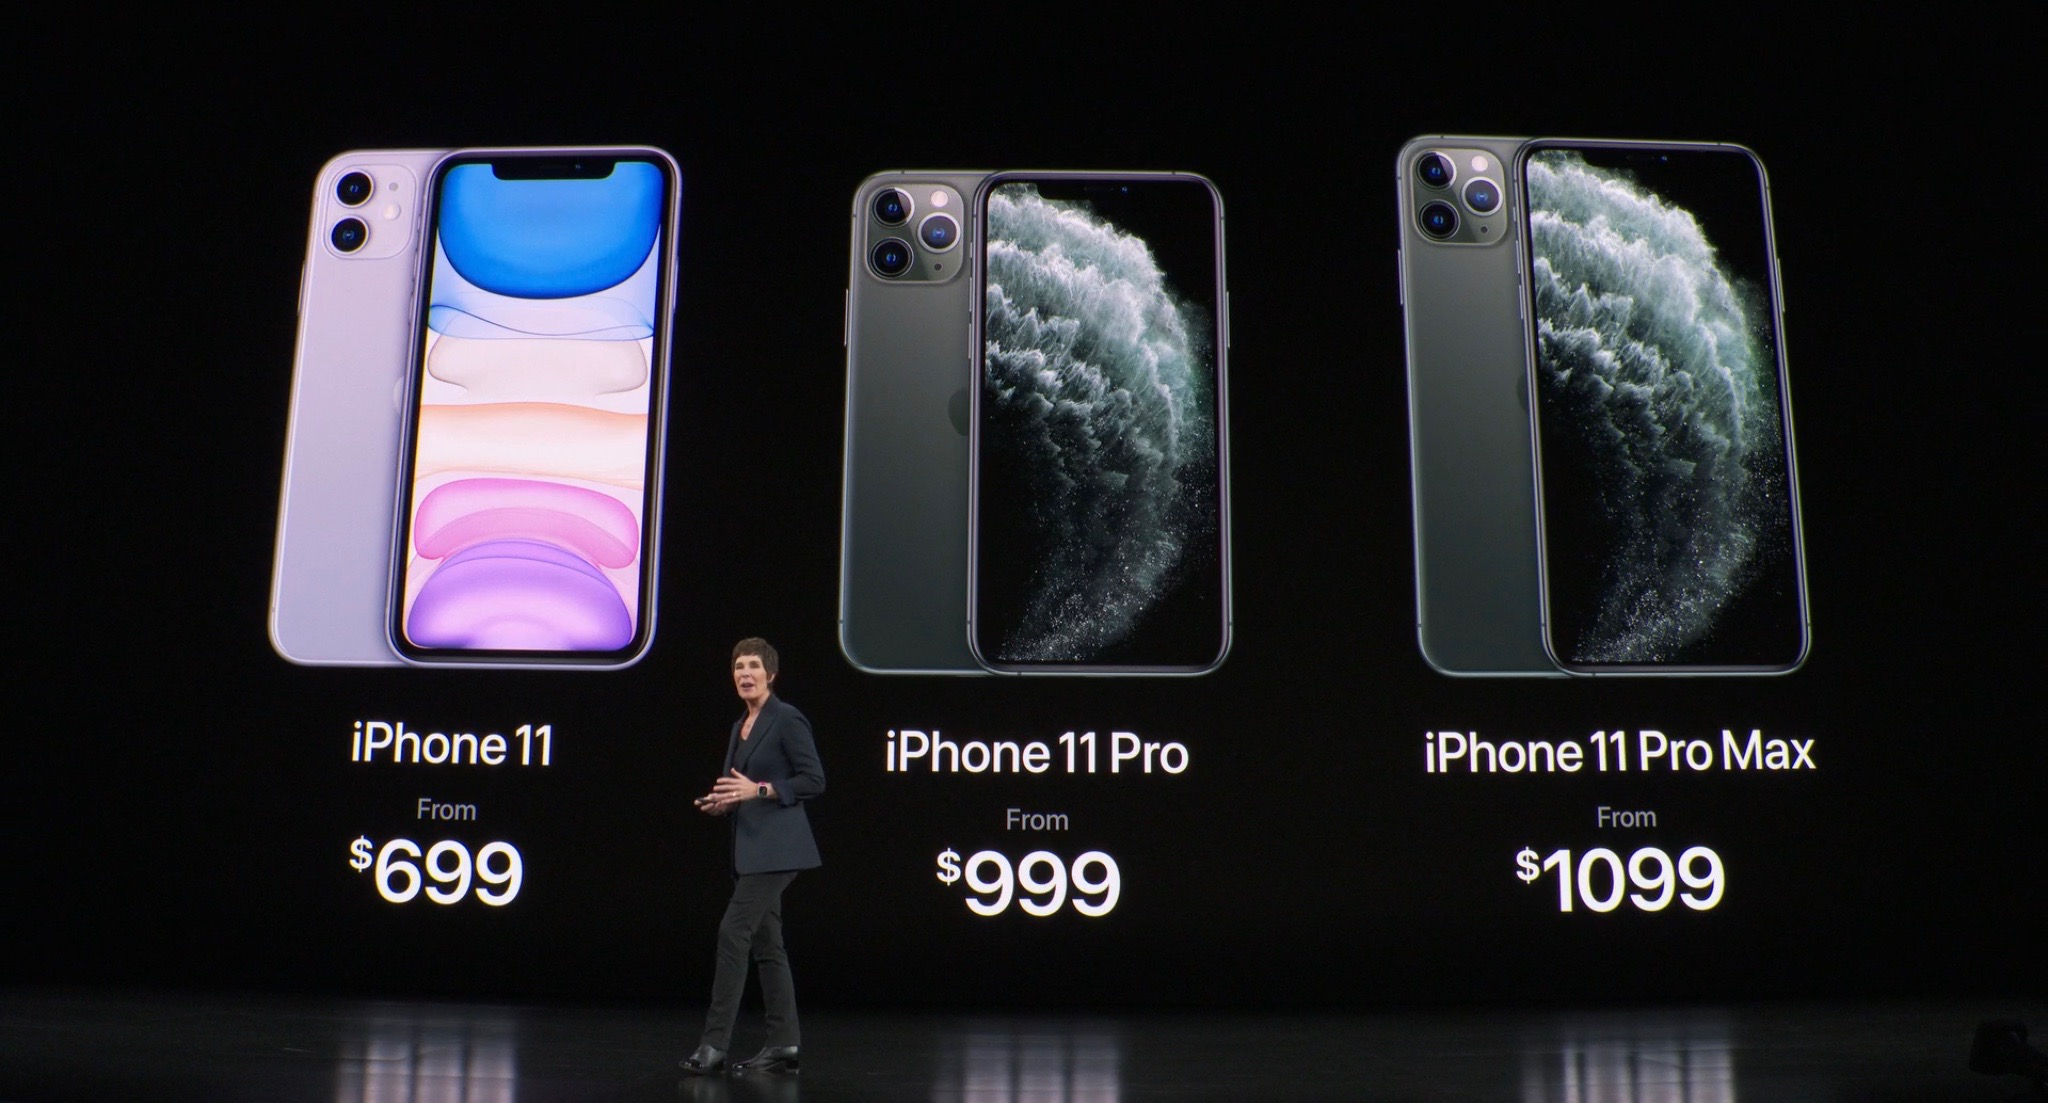 Apple exec in front of massive screen showing three models of iPhone 11, including prices.